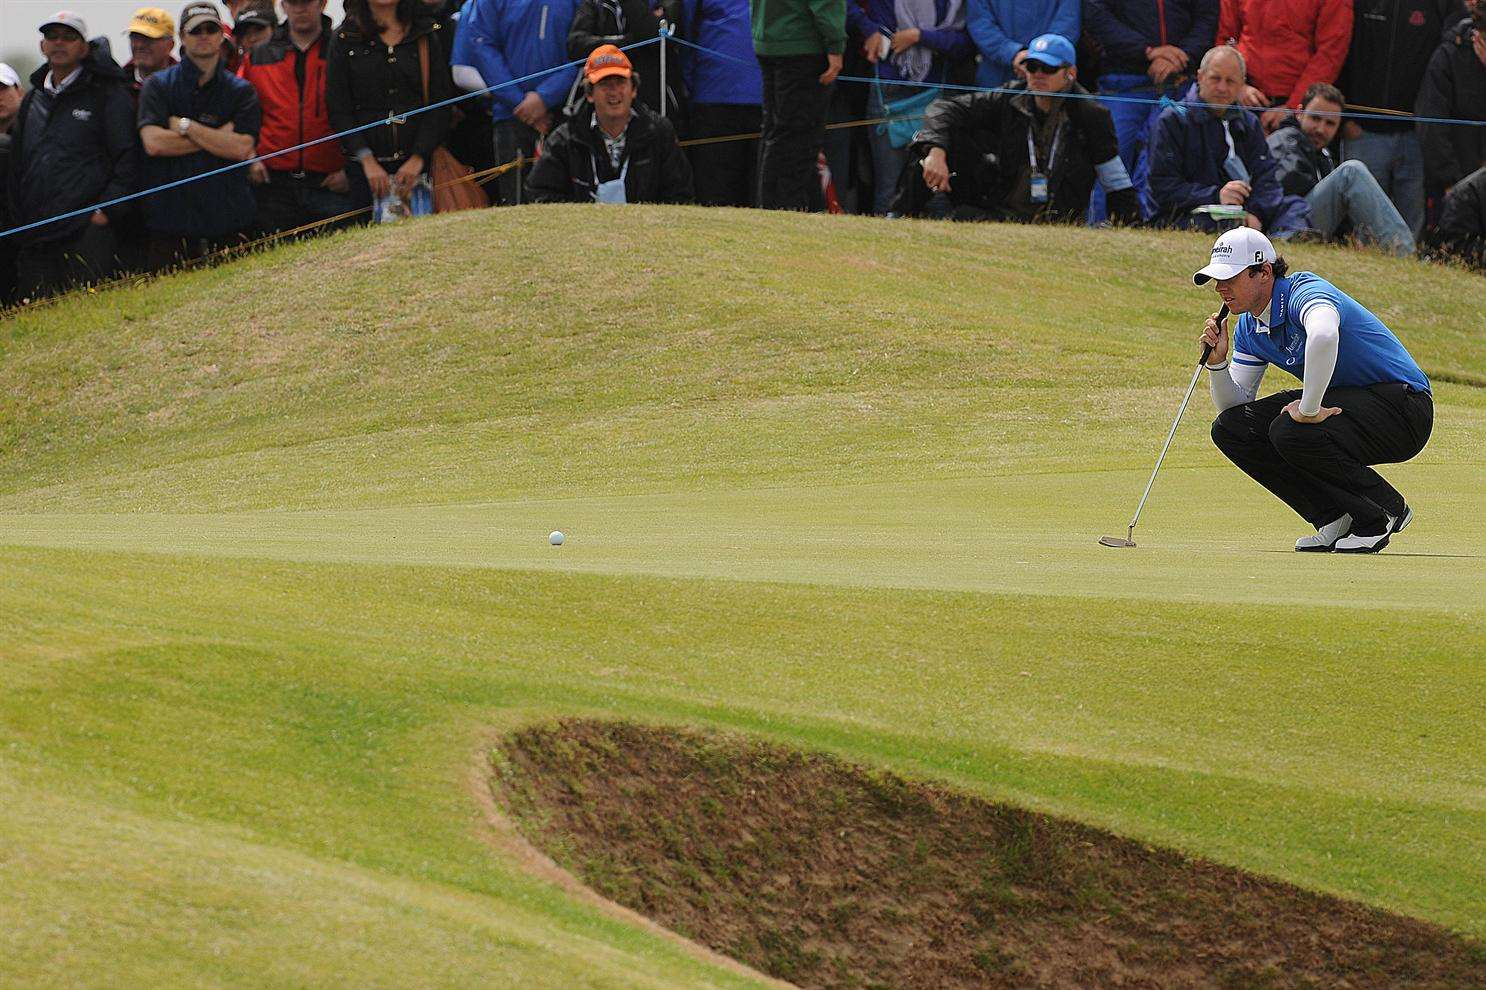 Current Open champion Rory McIlroy on the 10th green at Royal St George's in 2011, a customer of Farmura Environmental